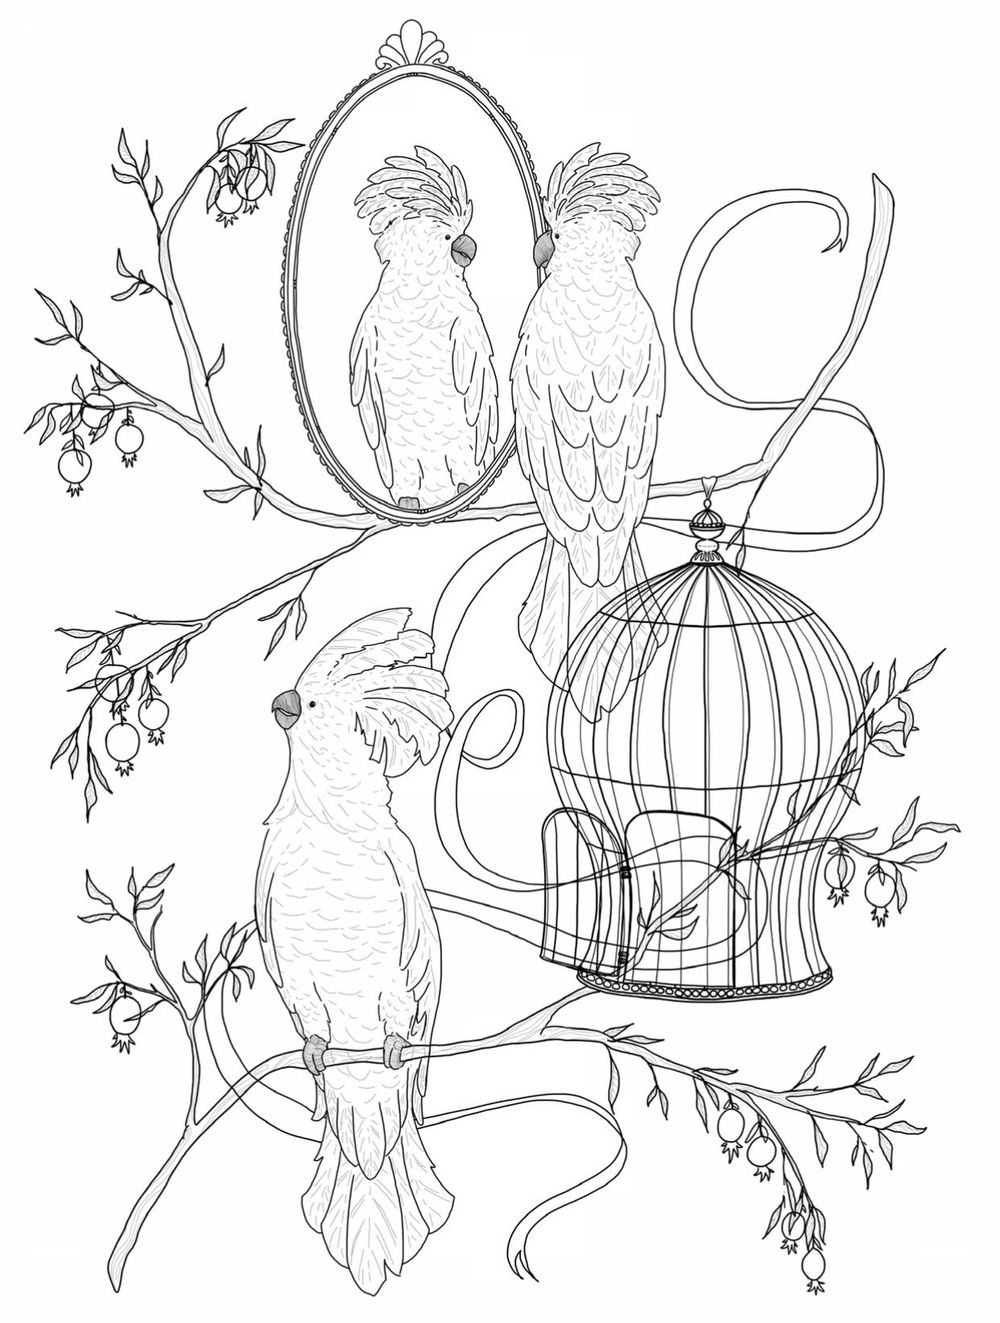 Cockatoo pattern - image 1 - student project